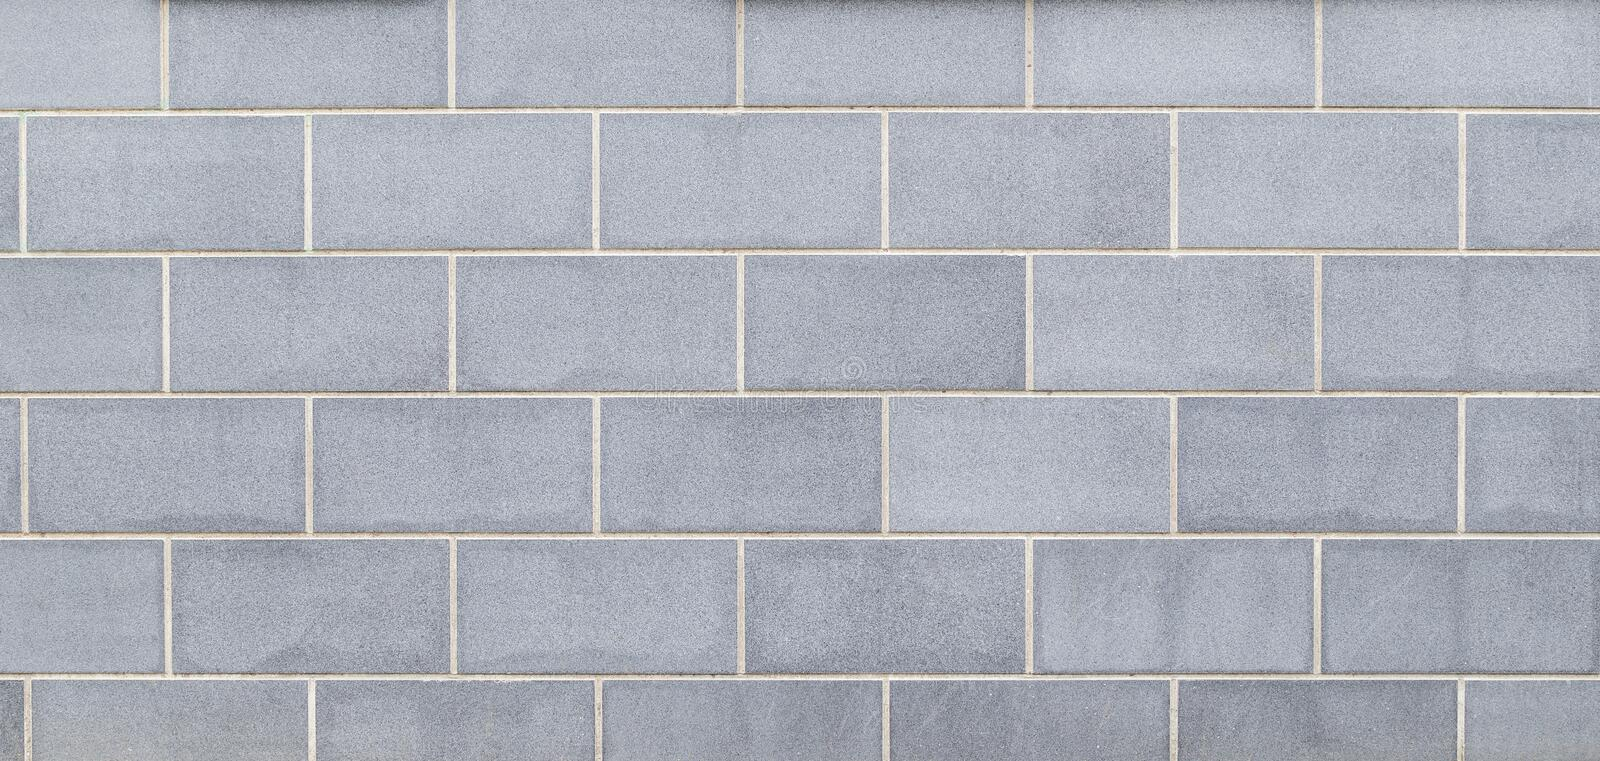 Modern light bluish gray slab wall background. High resolution full frame background of a new, modern and clean wall or building exterior made of light bluish royalty free stock photo